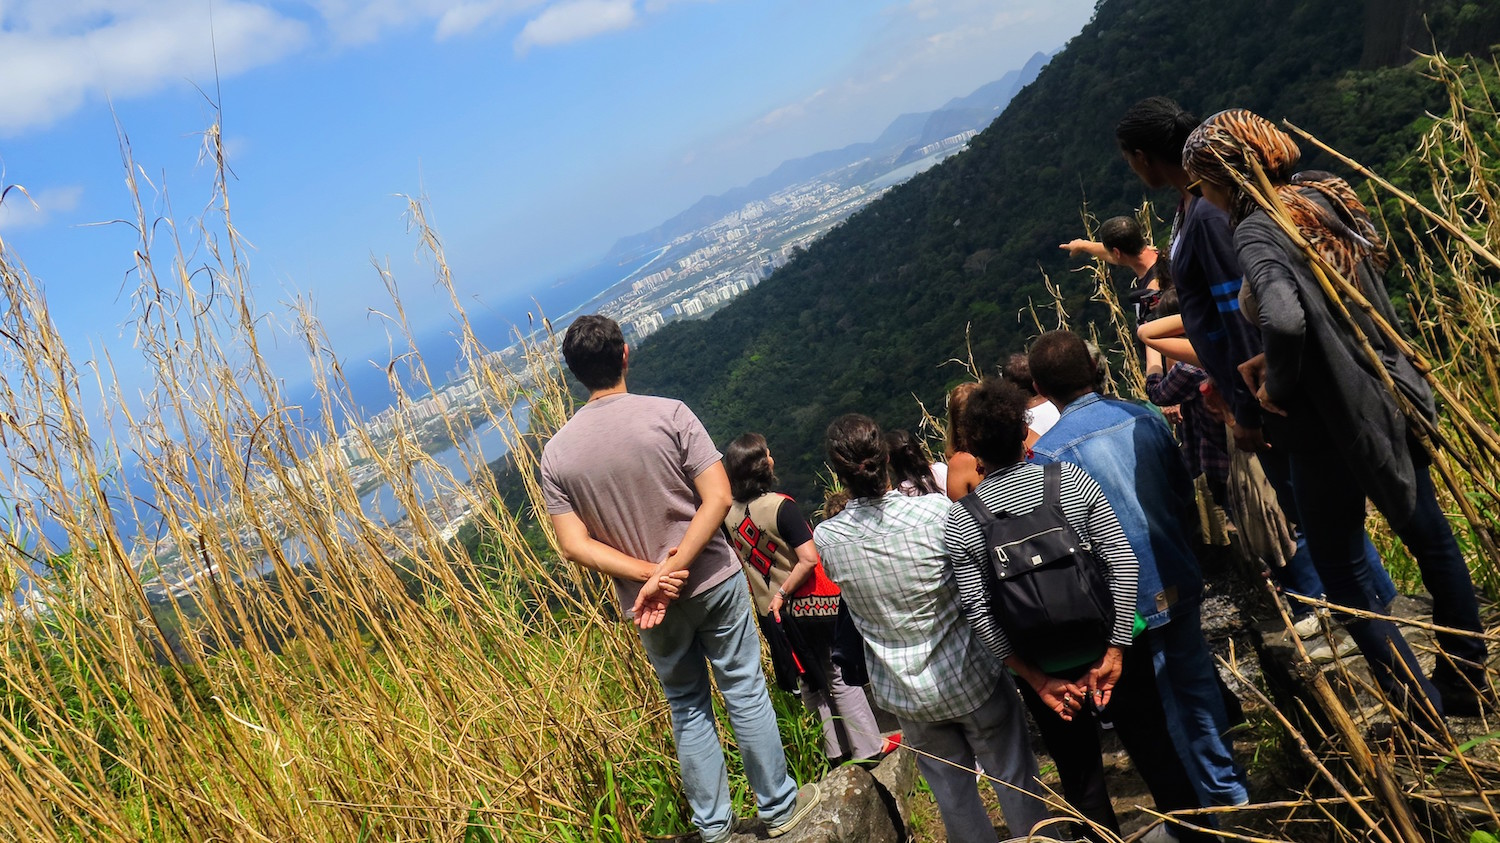 Touring the surrounding forest, the group stops to look at the view